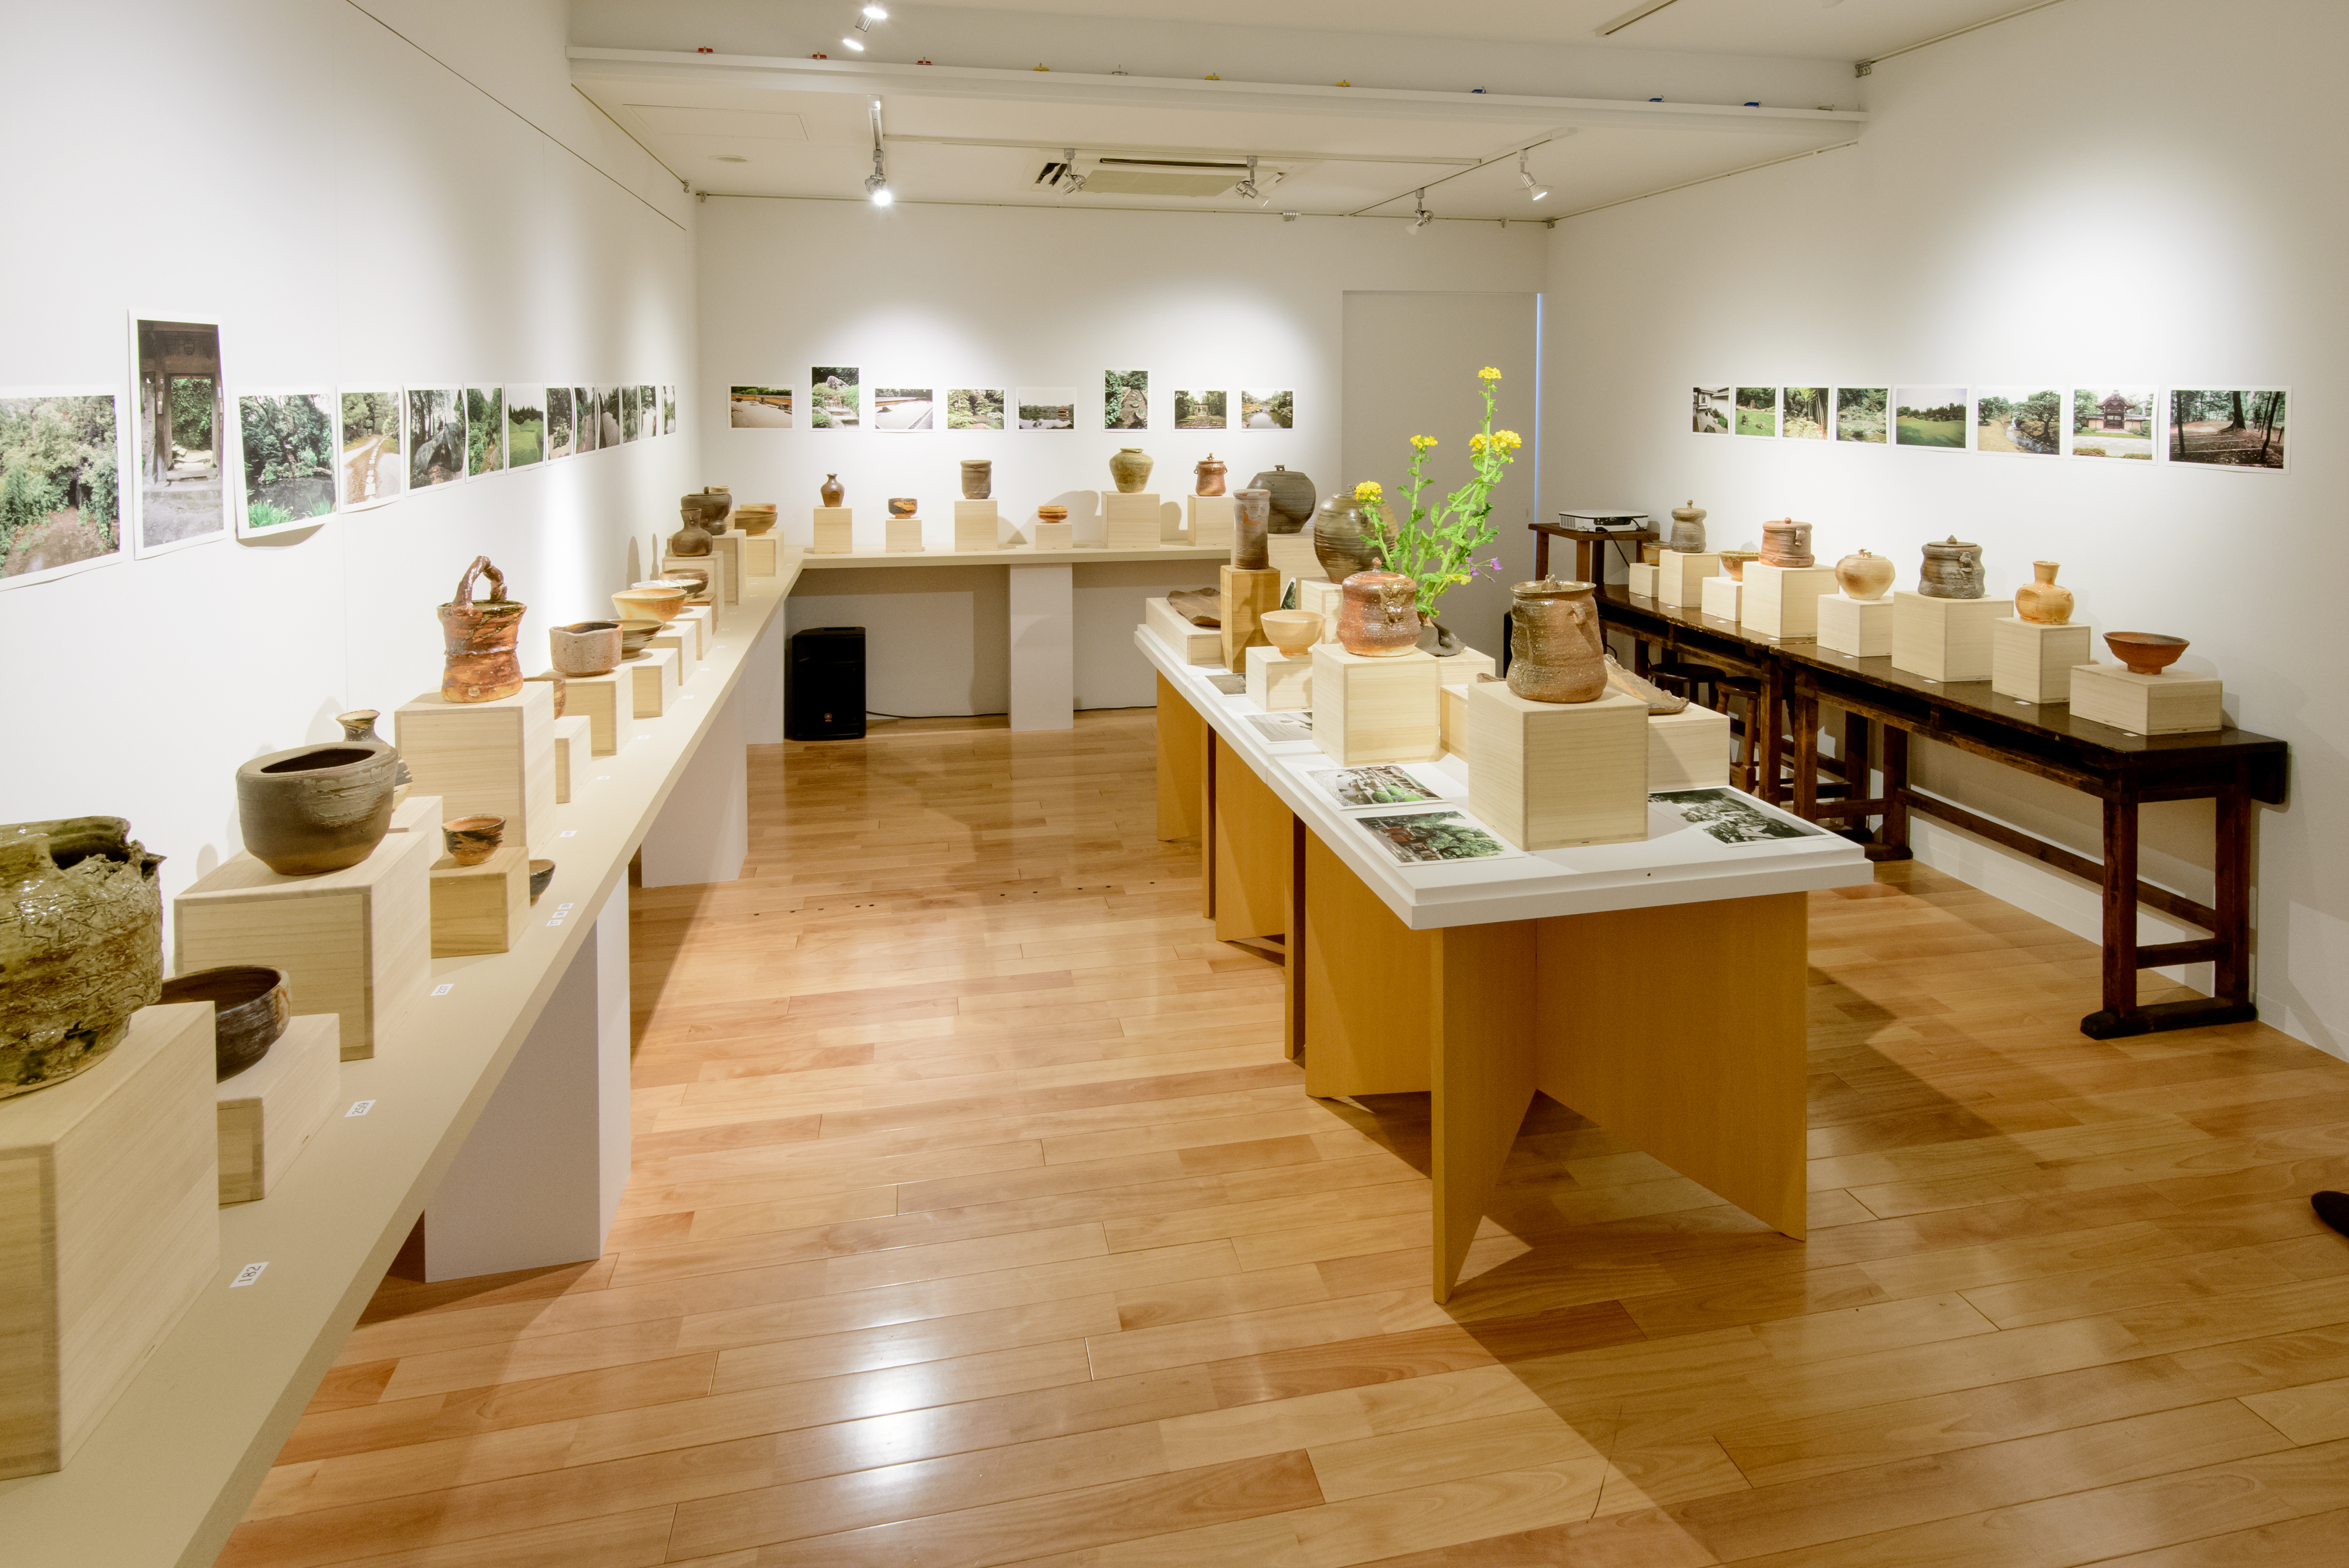 Pottery and Japanese Garden Images: Shaping the Bernard Leach Legacy (gallery view 1) | 2015 Wakayama Museum, Ginza, Tokyo